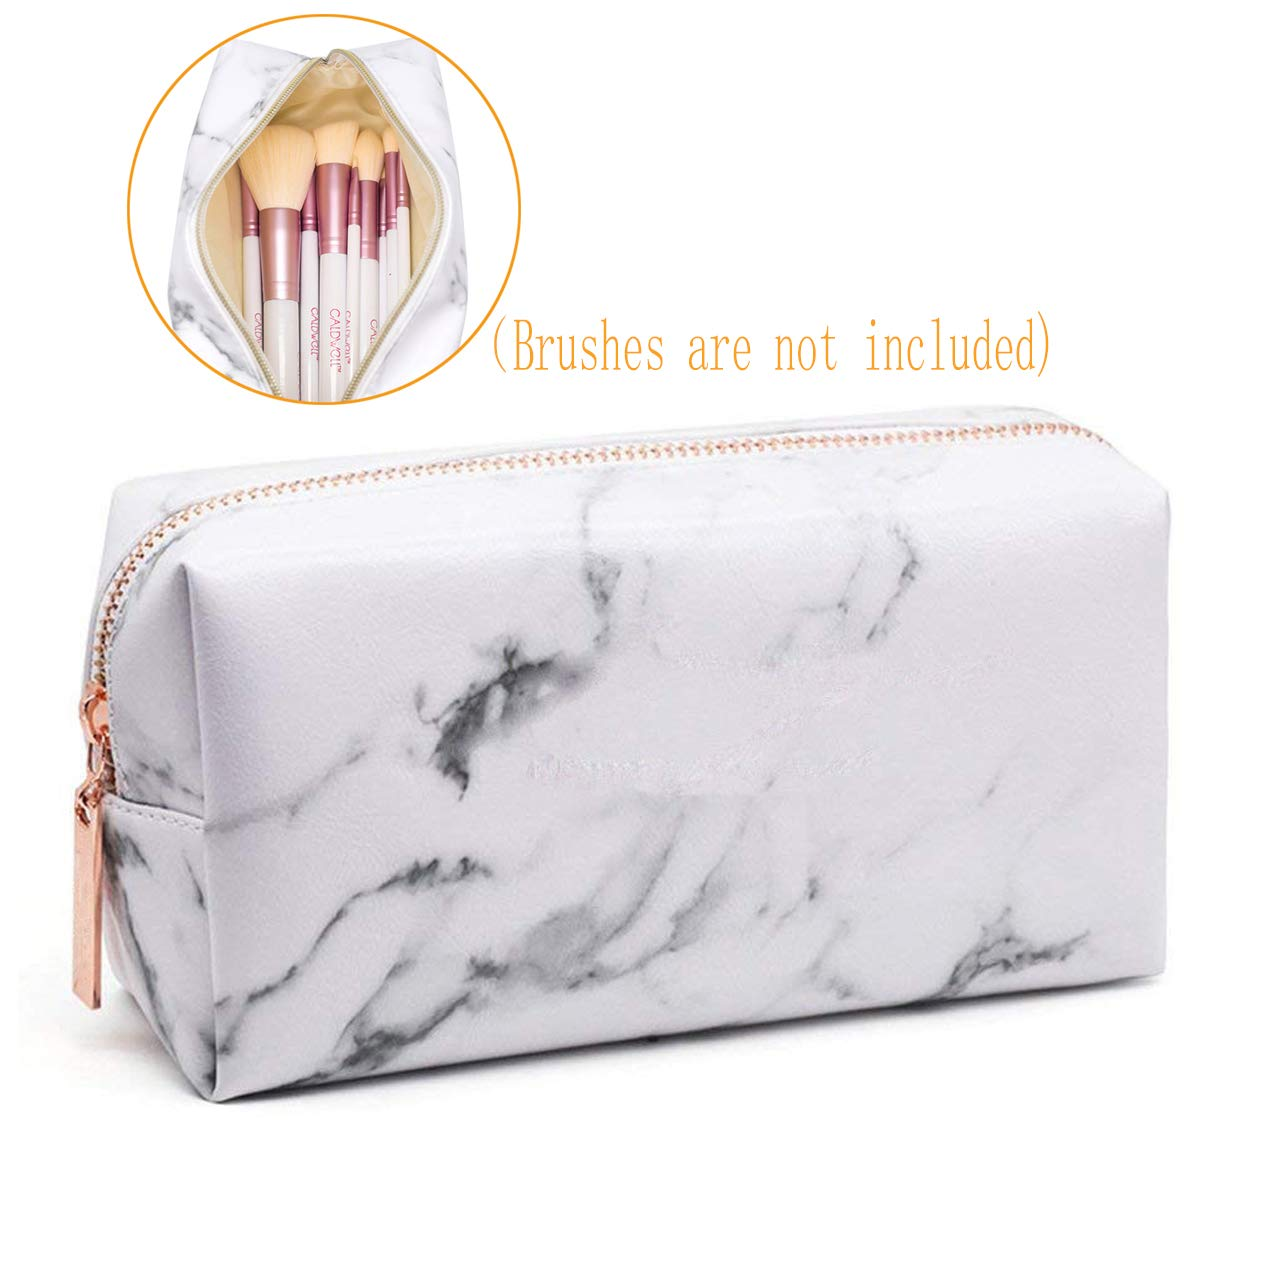 Marble Makeup Bags, Third A Travel Cosmetic Bags Brush Pouch Toiletry Bag Toiletry Wash Bag Fashion Portable Travel Make up Case Pouch for Women Girls